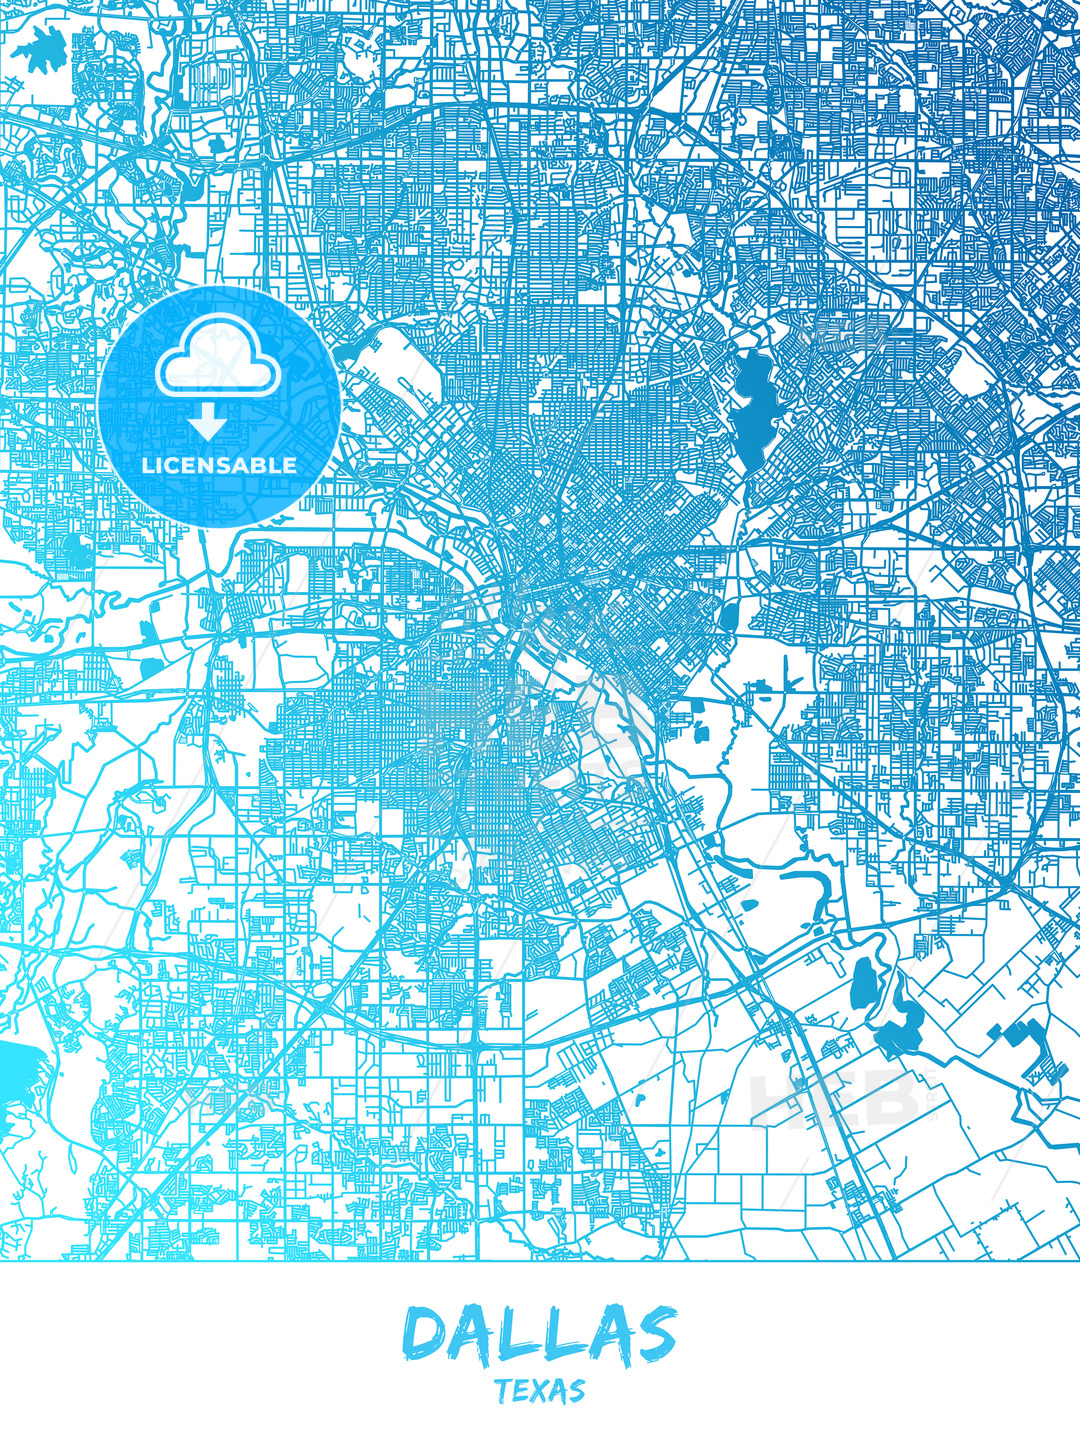 Dallas, Texas - Map Poster Design   HEBSTREITS Sketches on